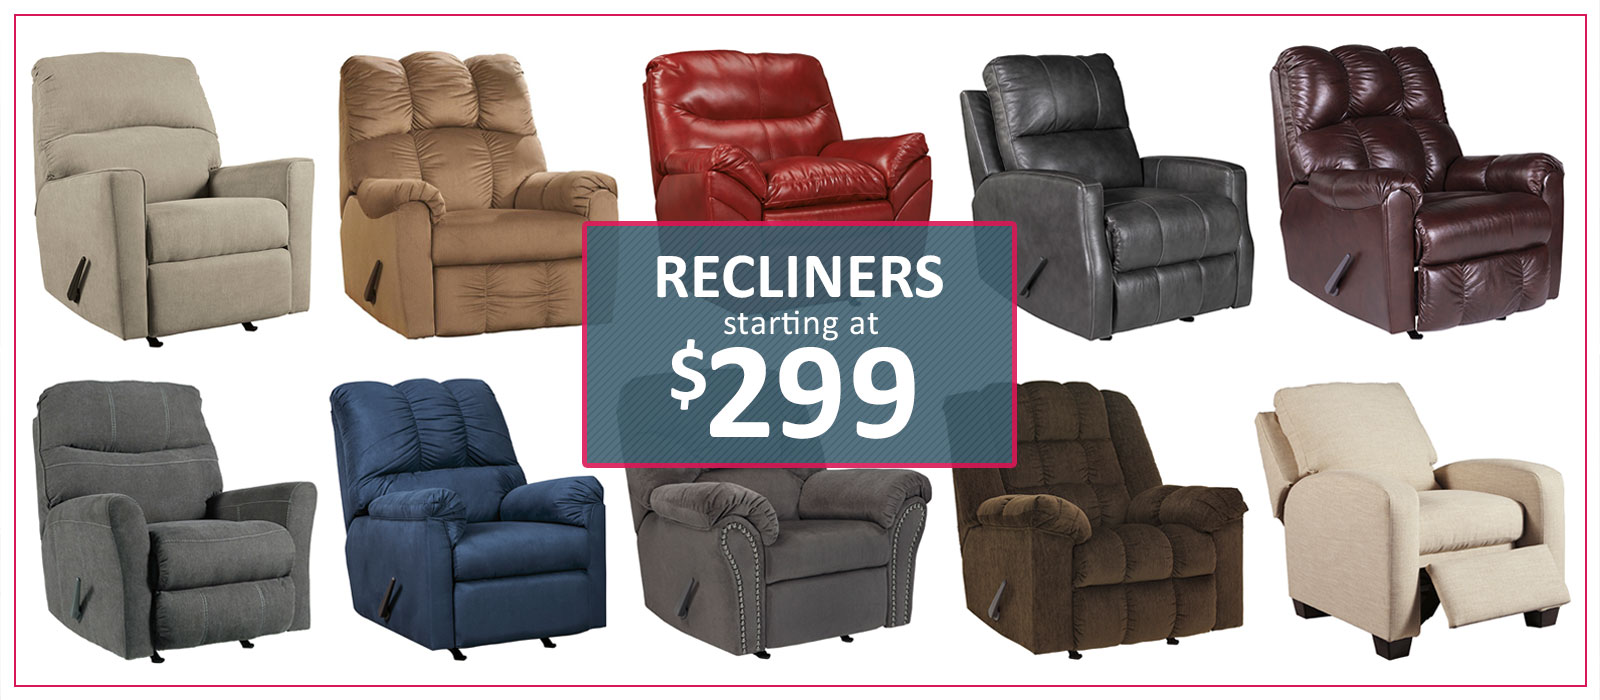 399 Furniture Store Find Brand Name Furniture At Unbeatable Prices In Brooklyn Ny